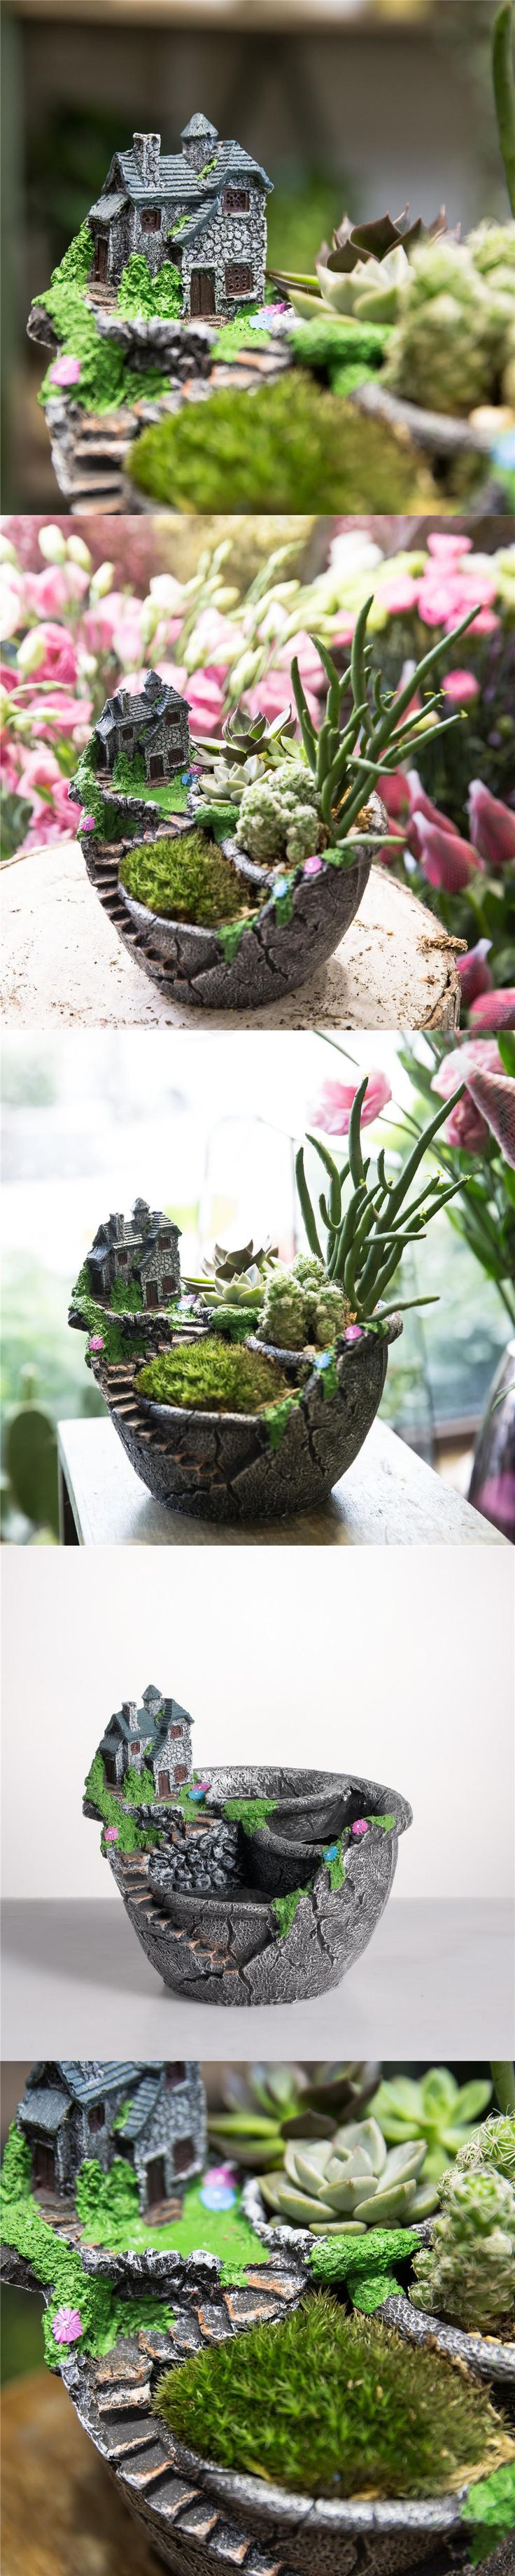 best 25+ the broken pots ideas on pinterest | broken pot garden